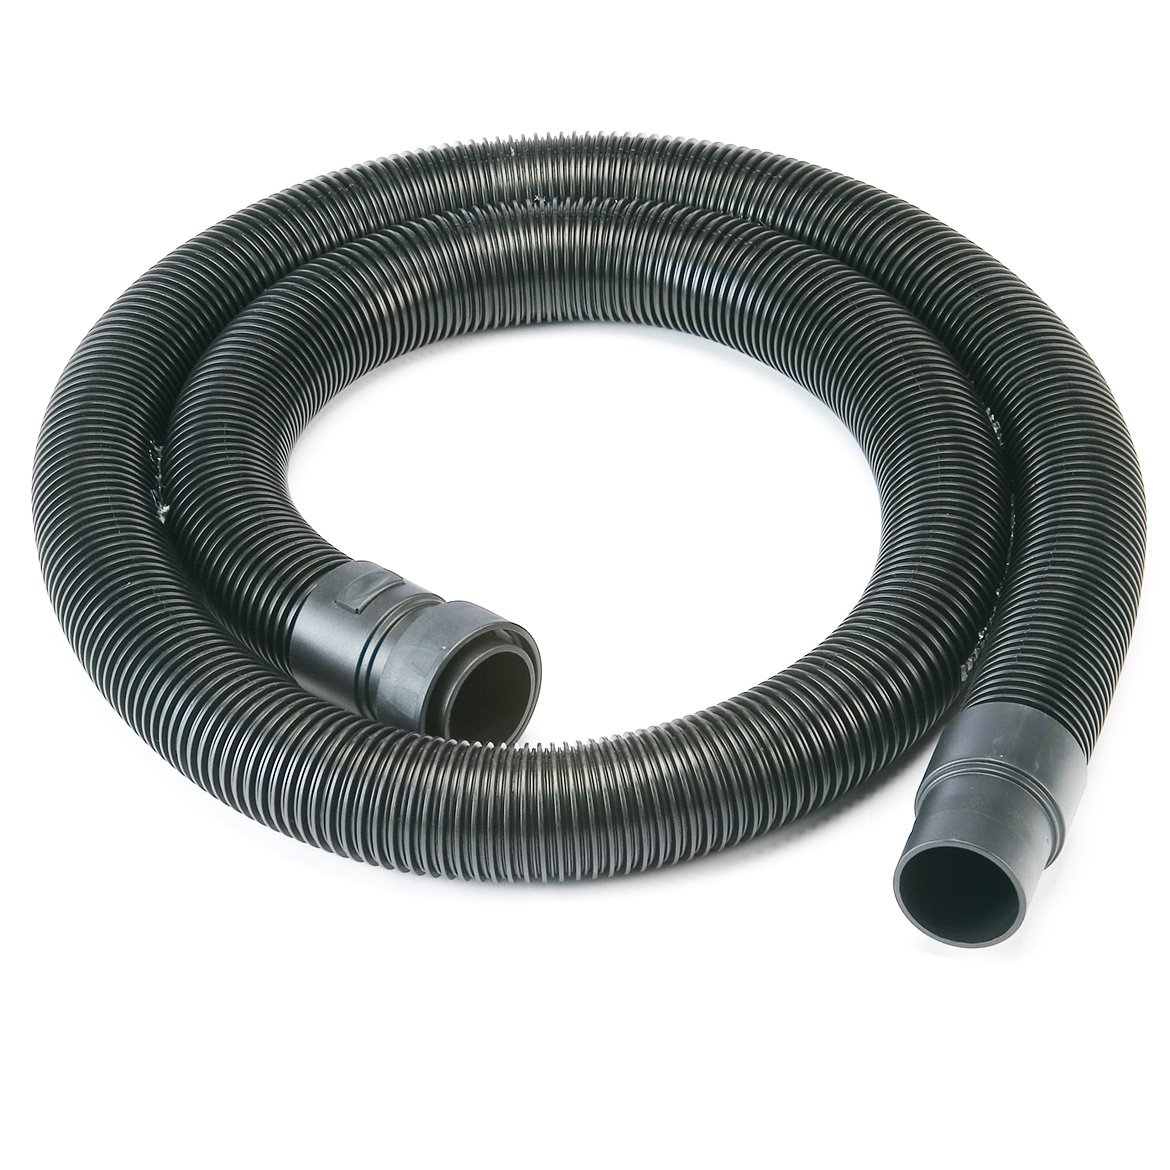 Shop Vac 9192700 2.5in Diameter x 6ft LockOn Vacuum Hose Assembly